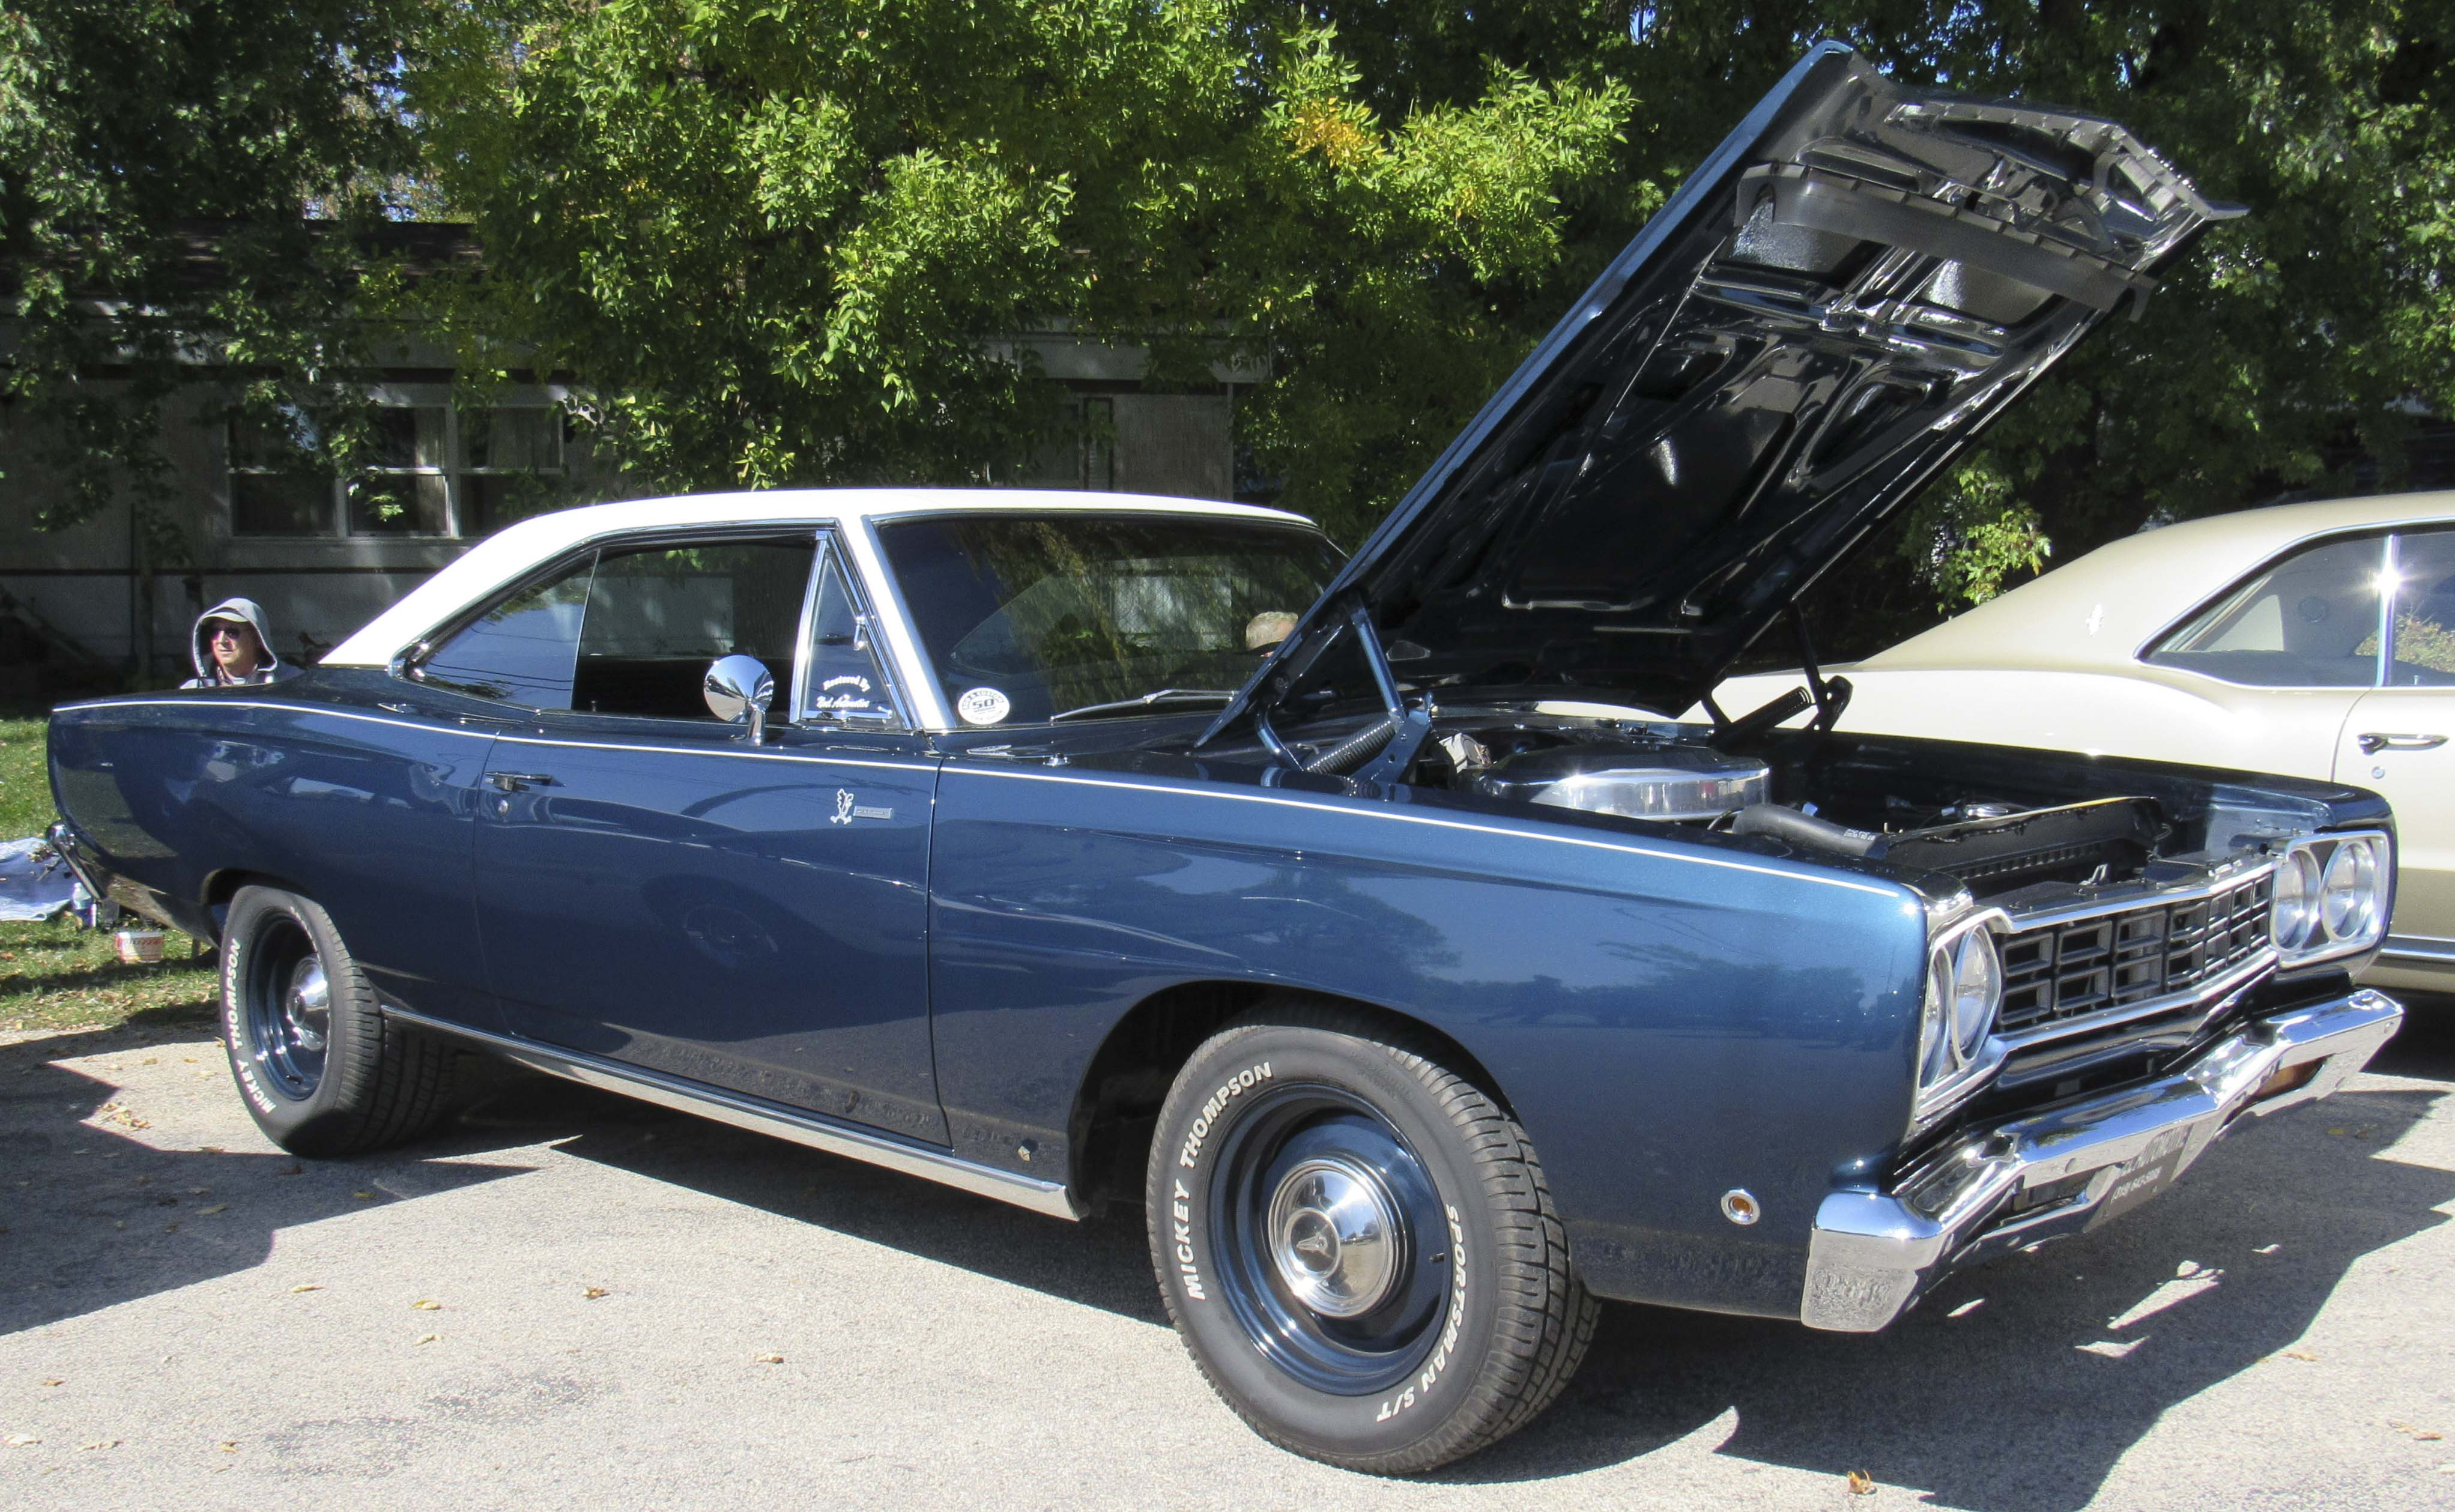 Gary Hoffman of Anamosa is the owner of a 1968 Plymouth Road Runner.